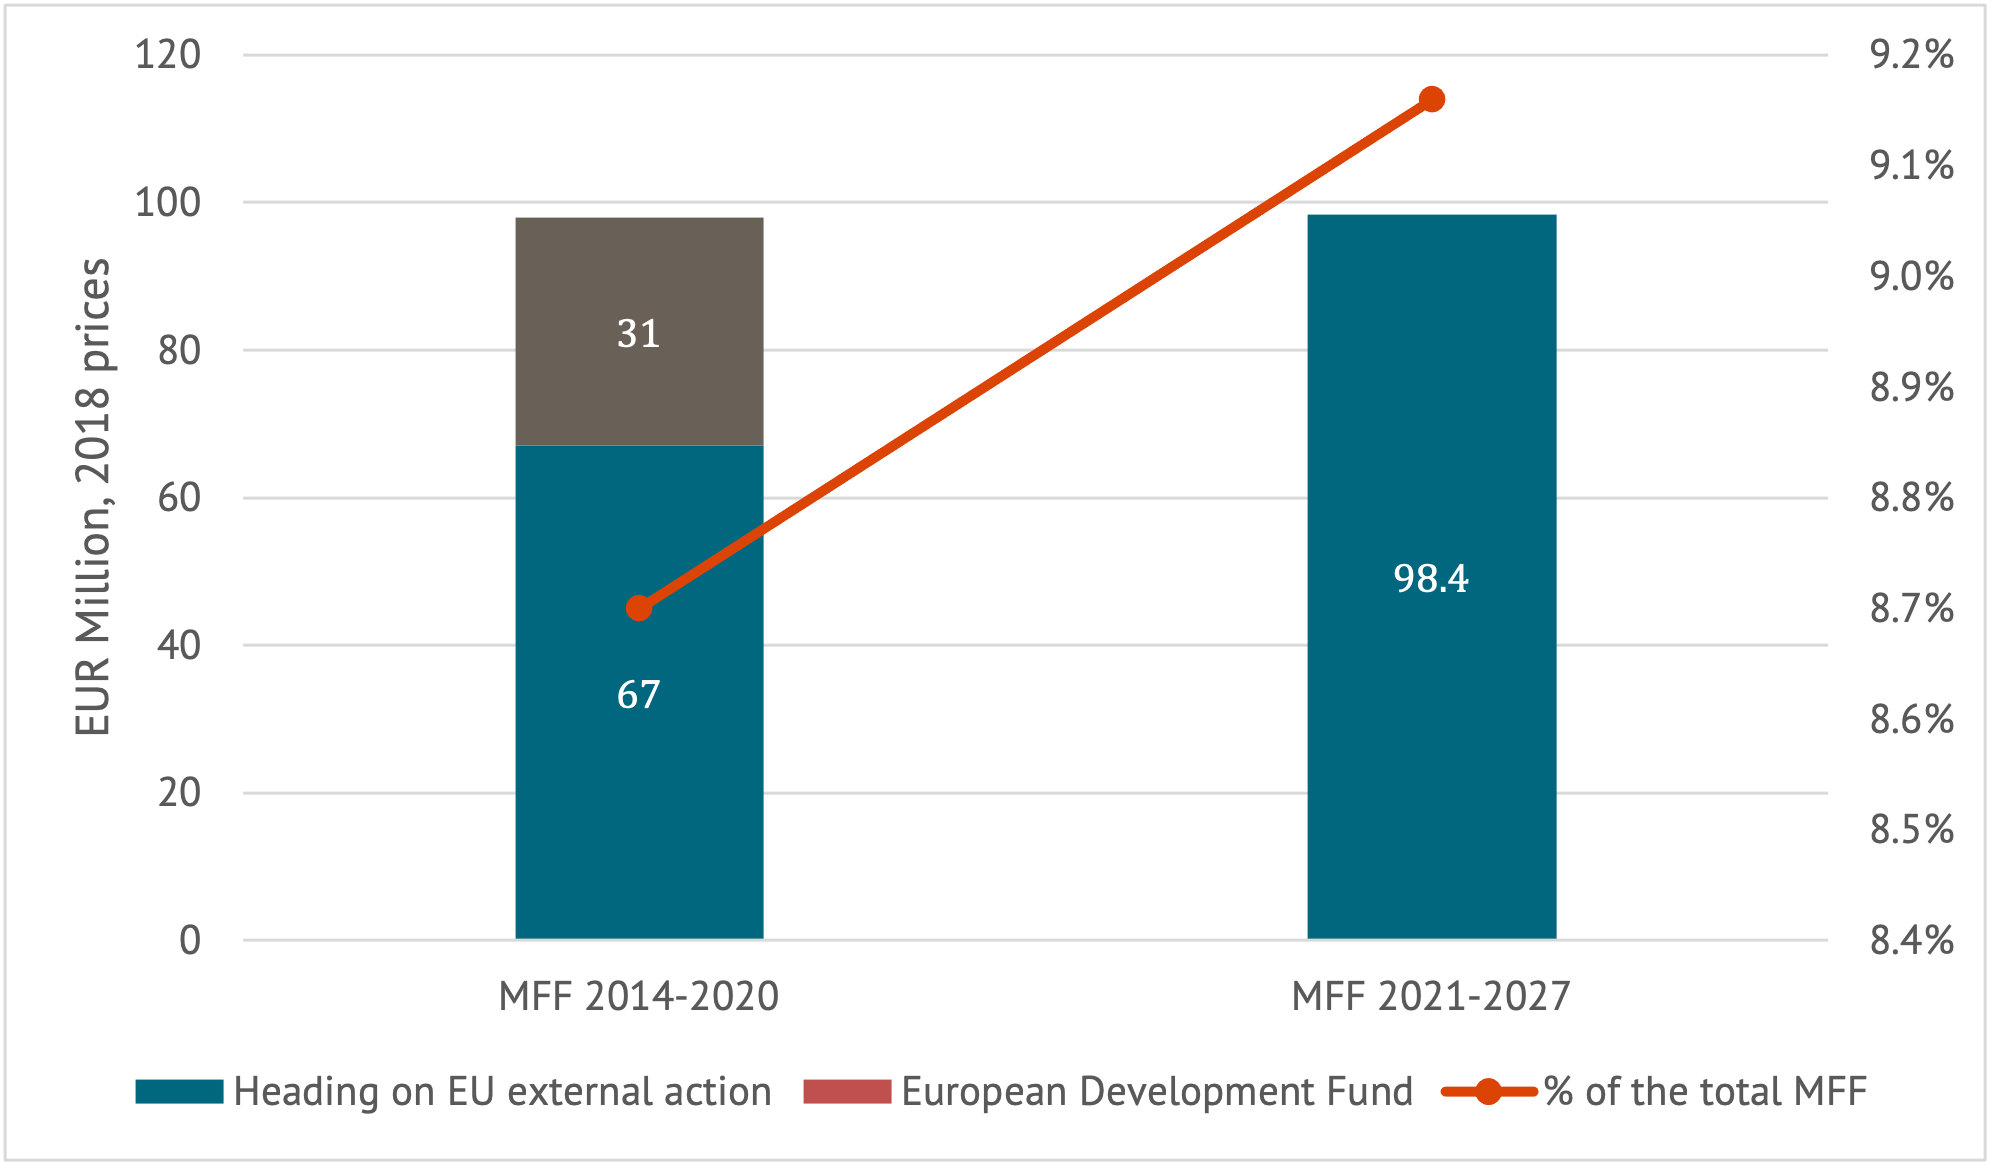 A chart showing the EU budget for external action, 2014-2020 and 2021-2027 compared.